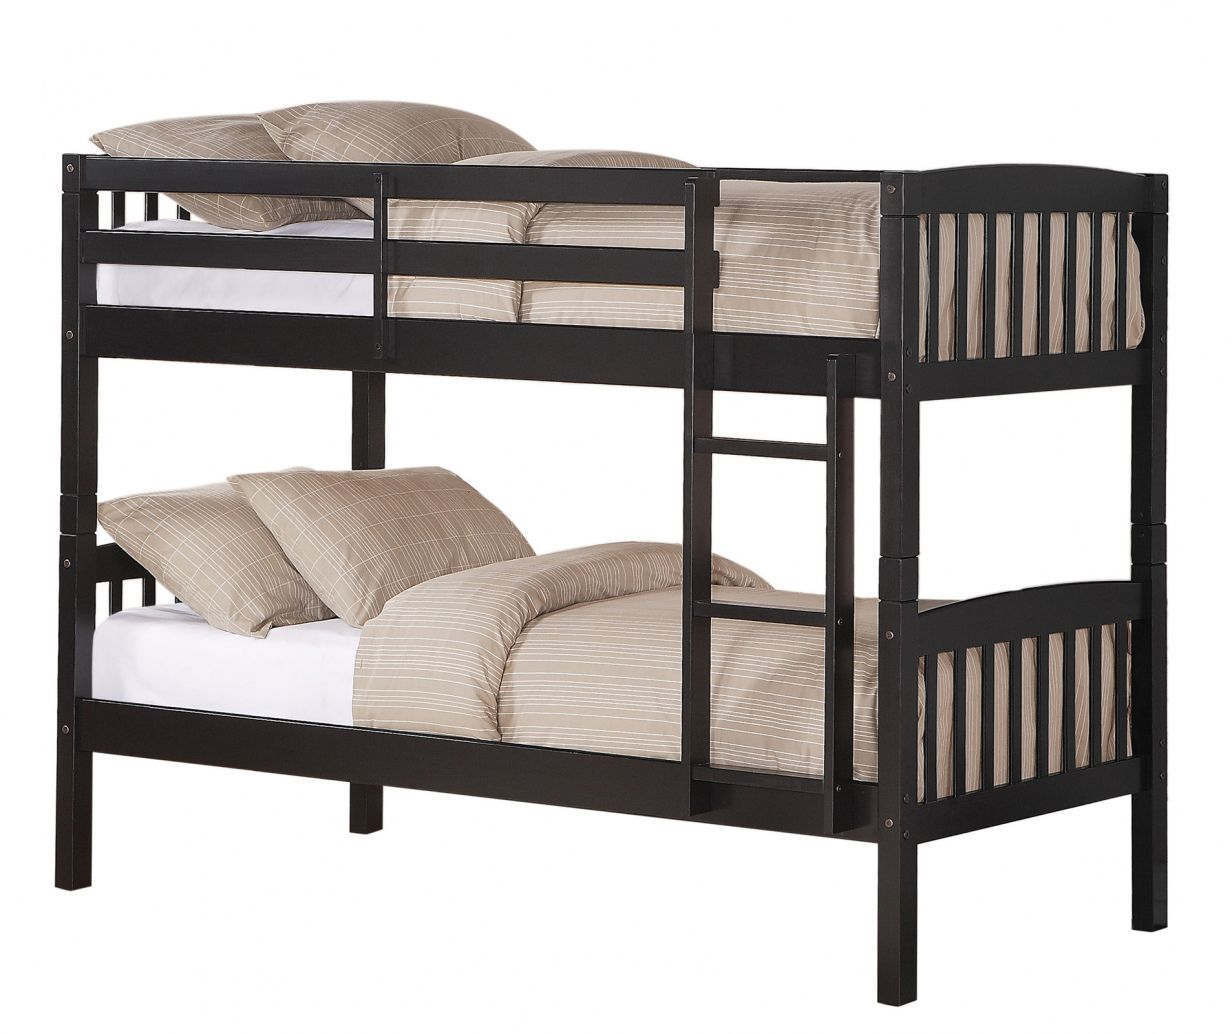 Lovely Sears Bunk Bed